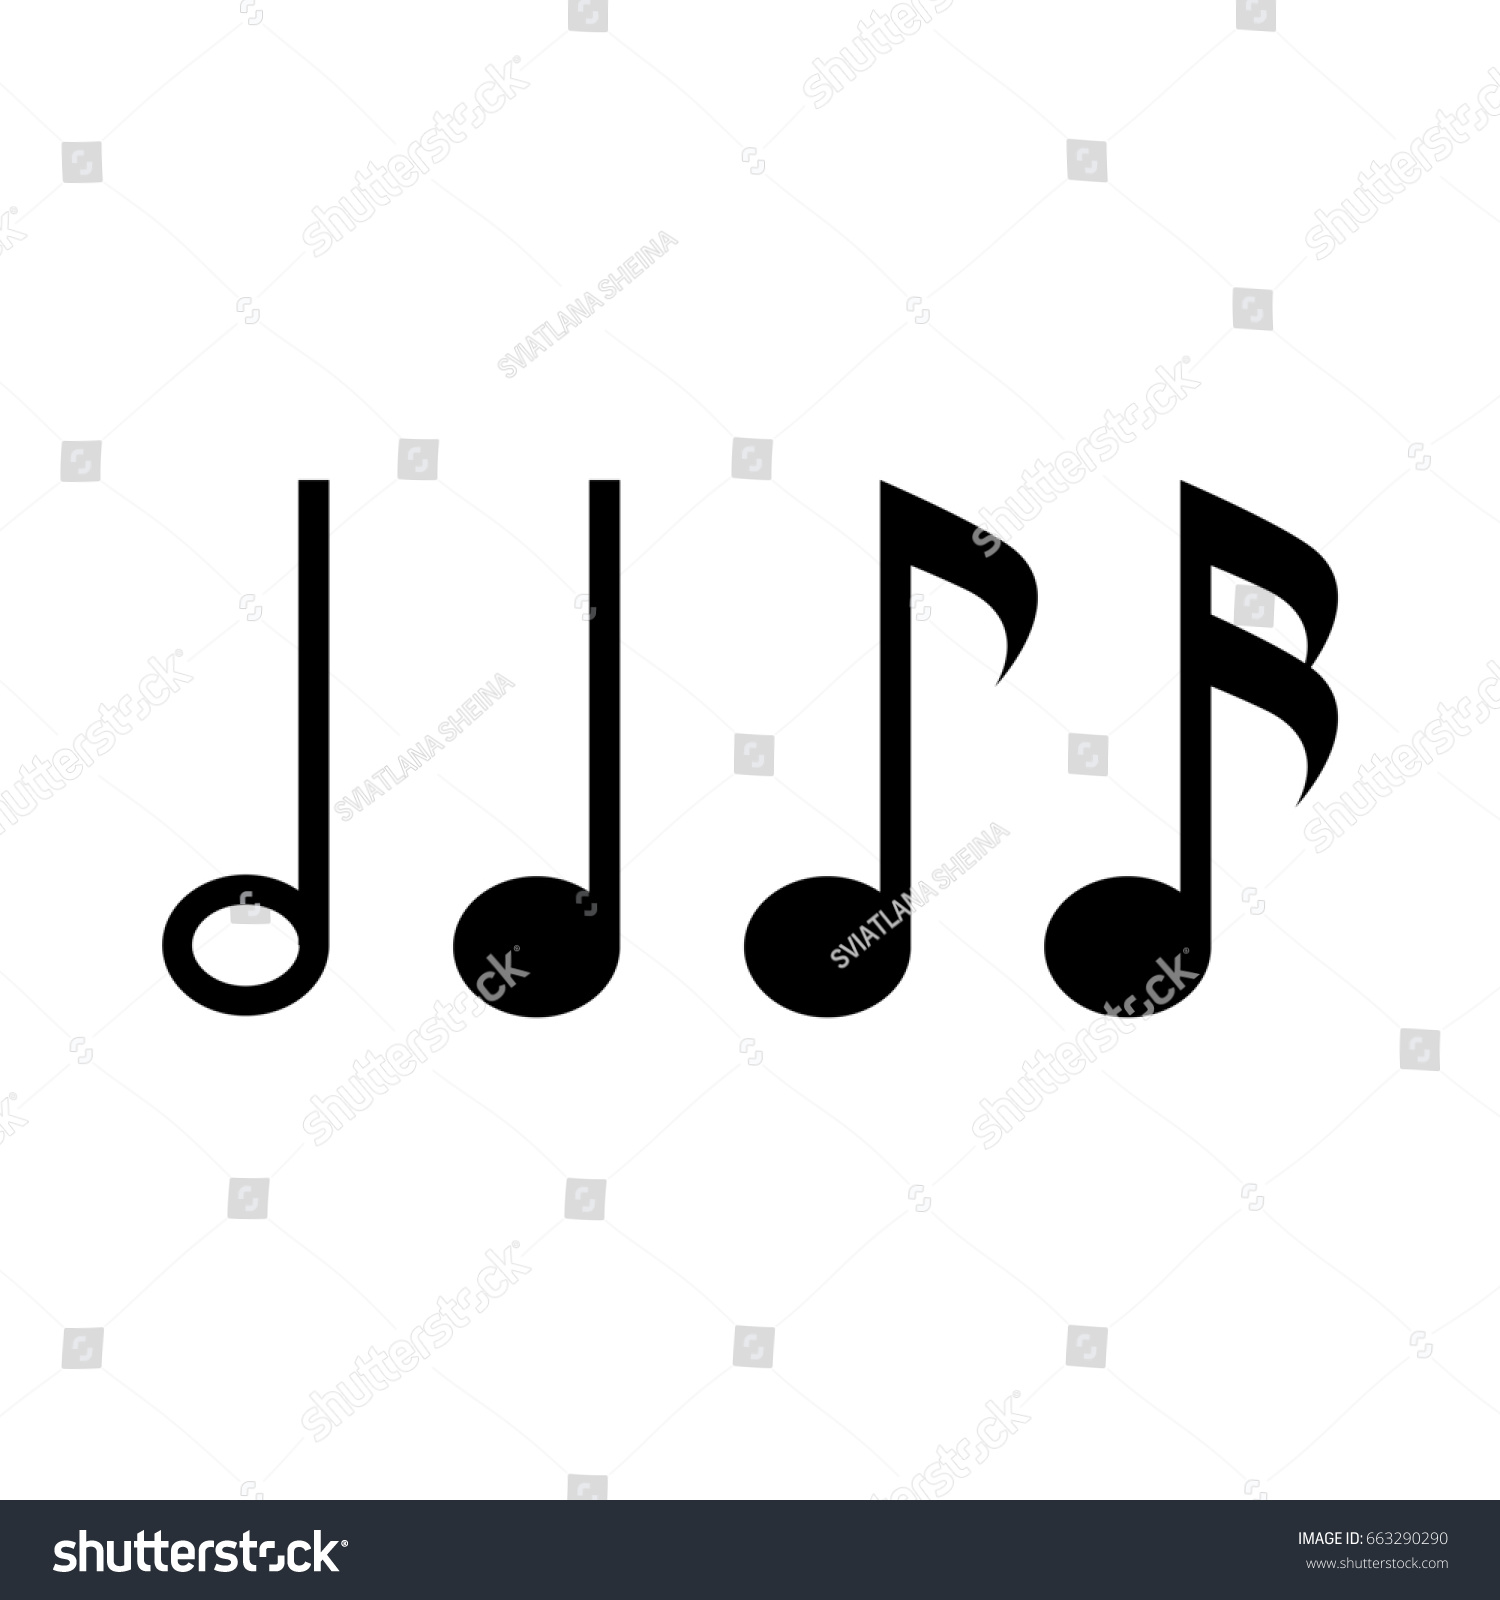 Symbol music notes sixteenth note eighth stock illustration symbol of music notes sixteenth note eighth note quarter note and half buycottarizona Images